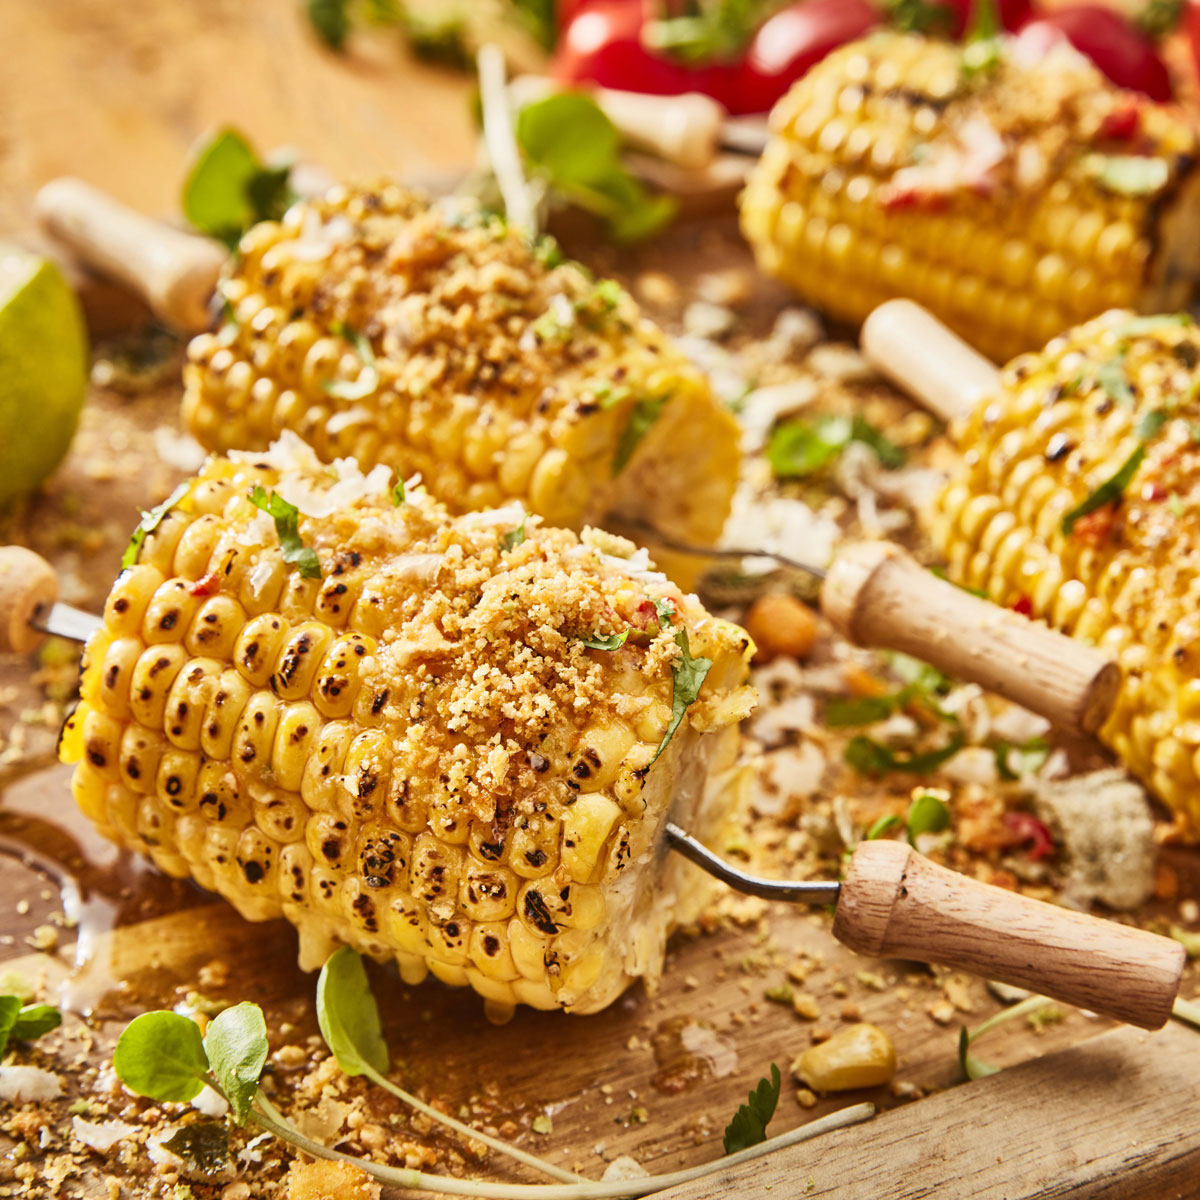 BBQ Sweetcorn with Chilli Butter